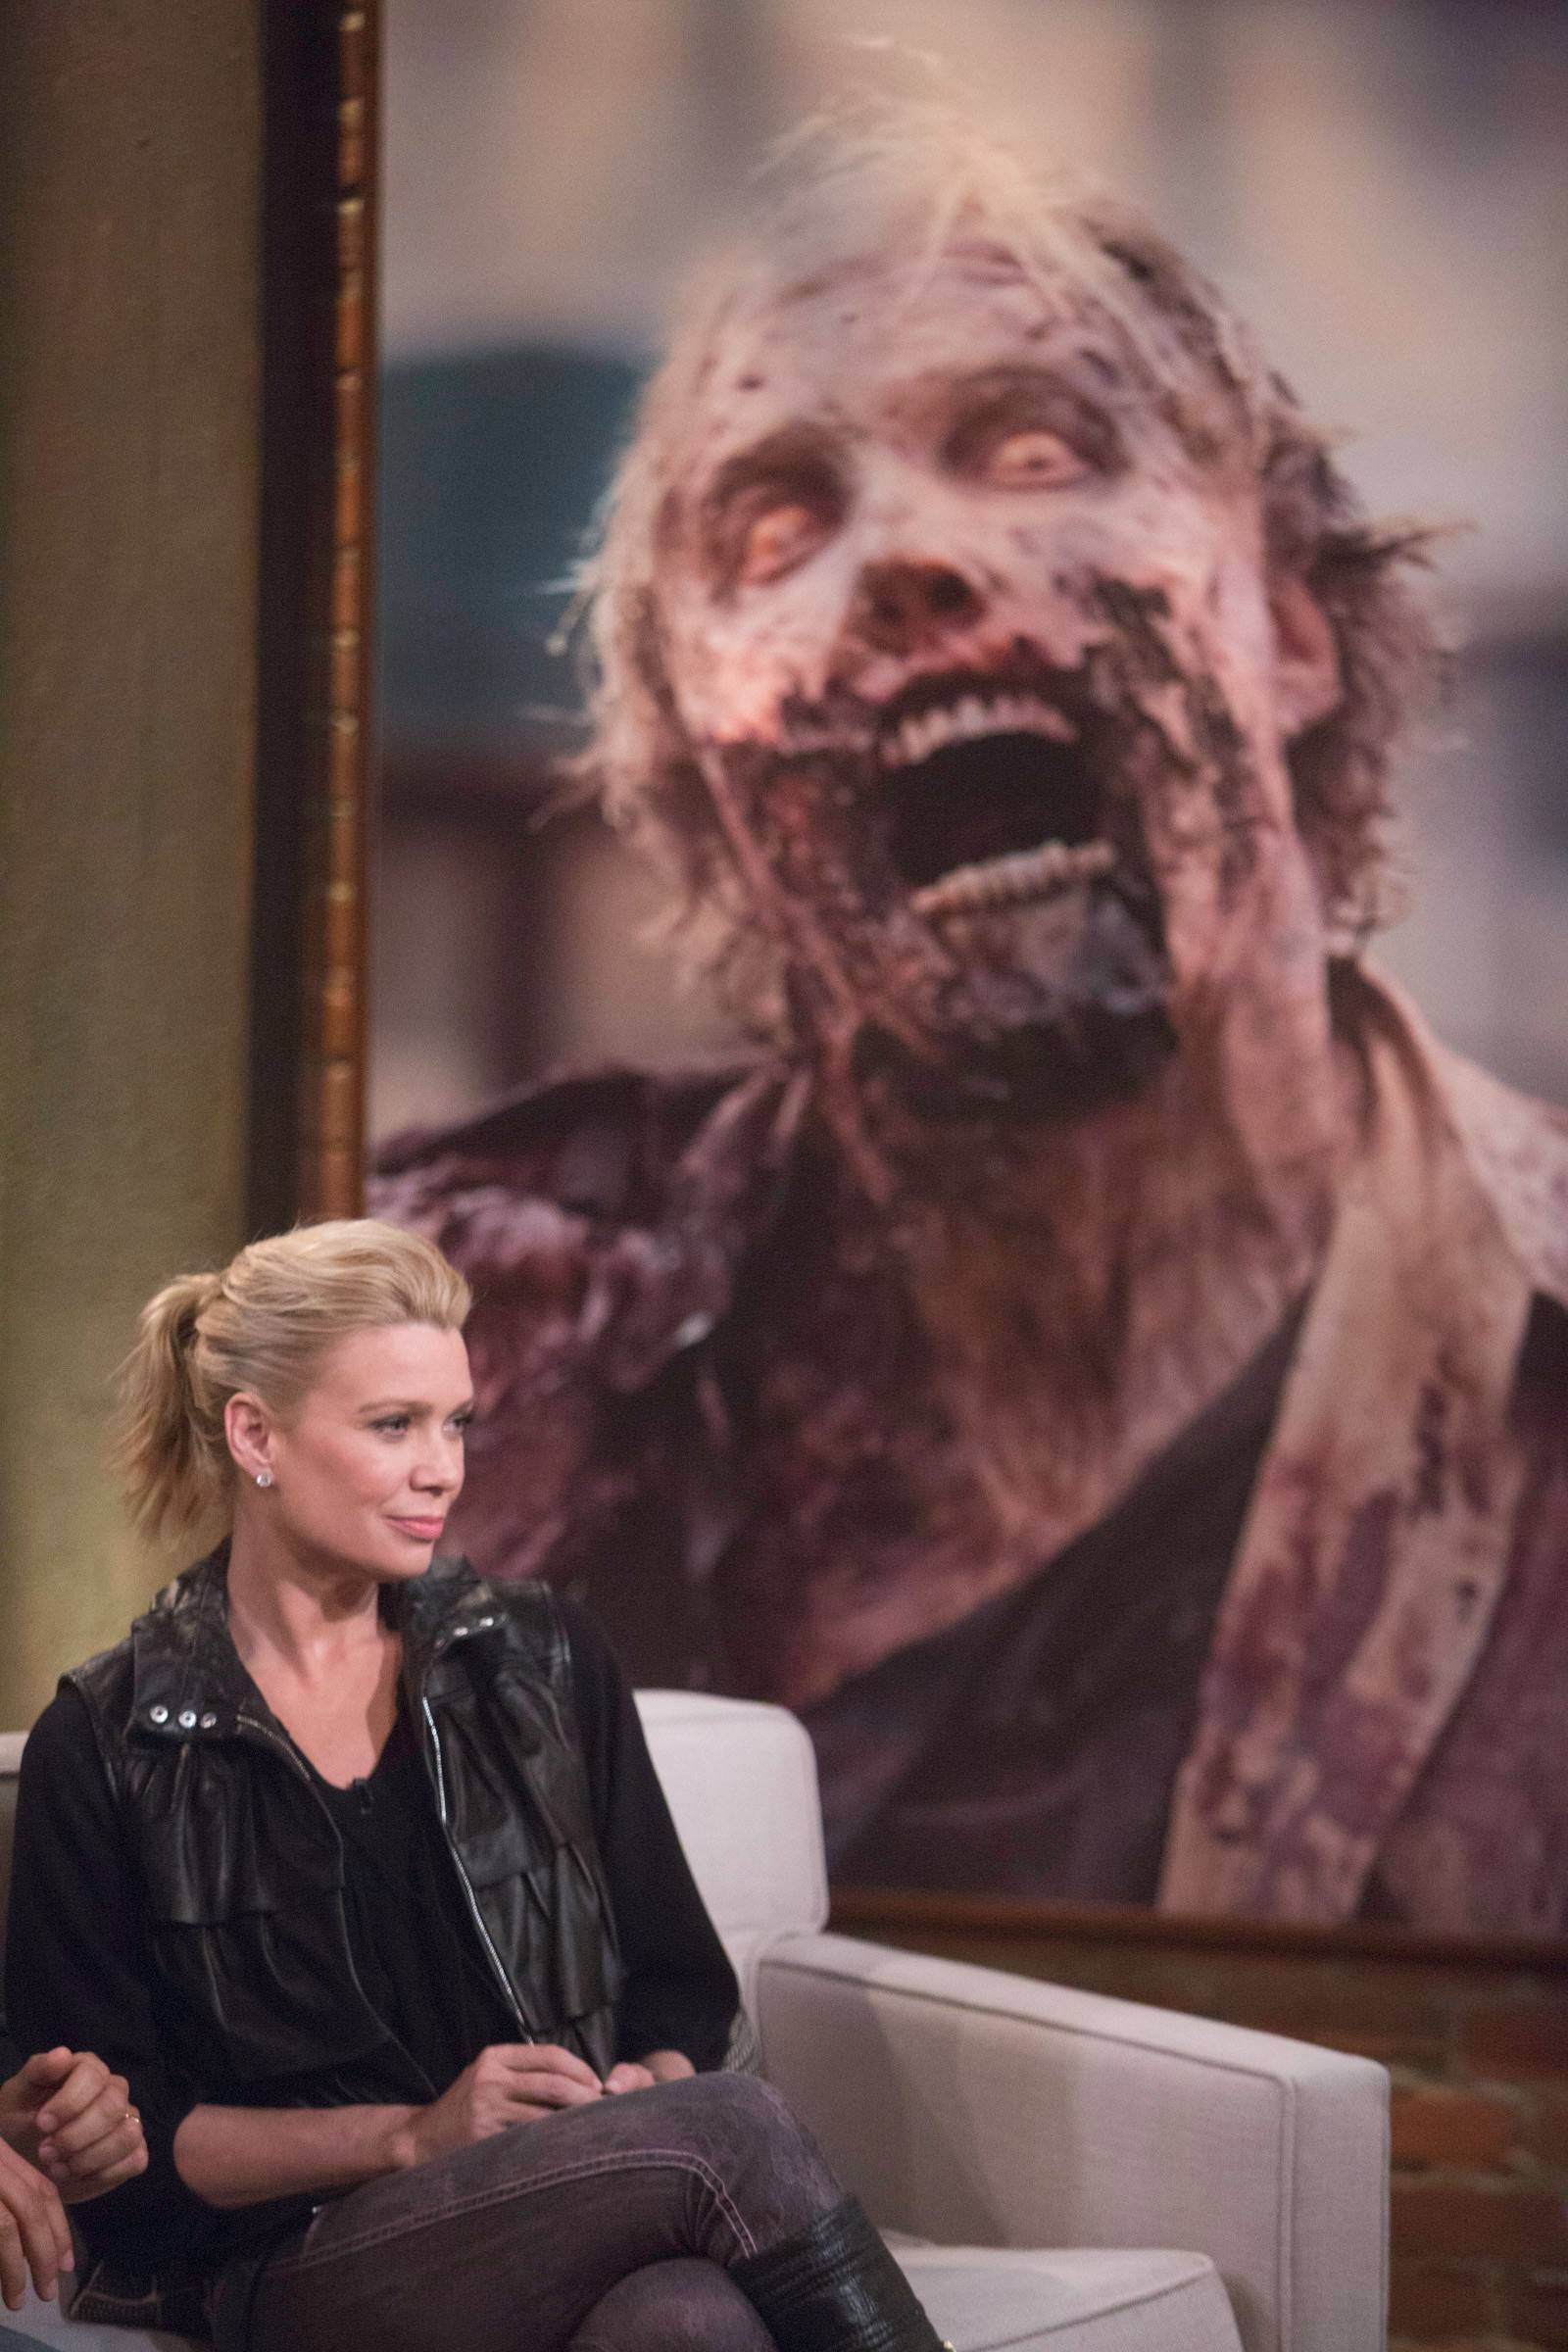 "Courtesy of Jordin Althaus/AMC  Laurie Holden (""The Walking Dead"") is one of the featured stars appearing at The Walker Stalker Convention 2014 at the Donald E. Stephens Convention Center in Rosemont between Friday, March 14, through Sunday, March 16."